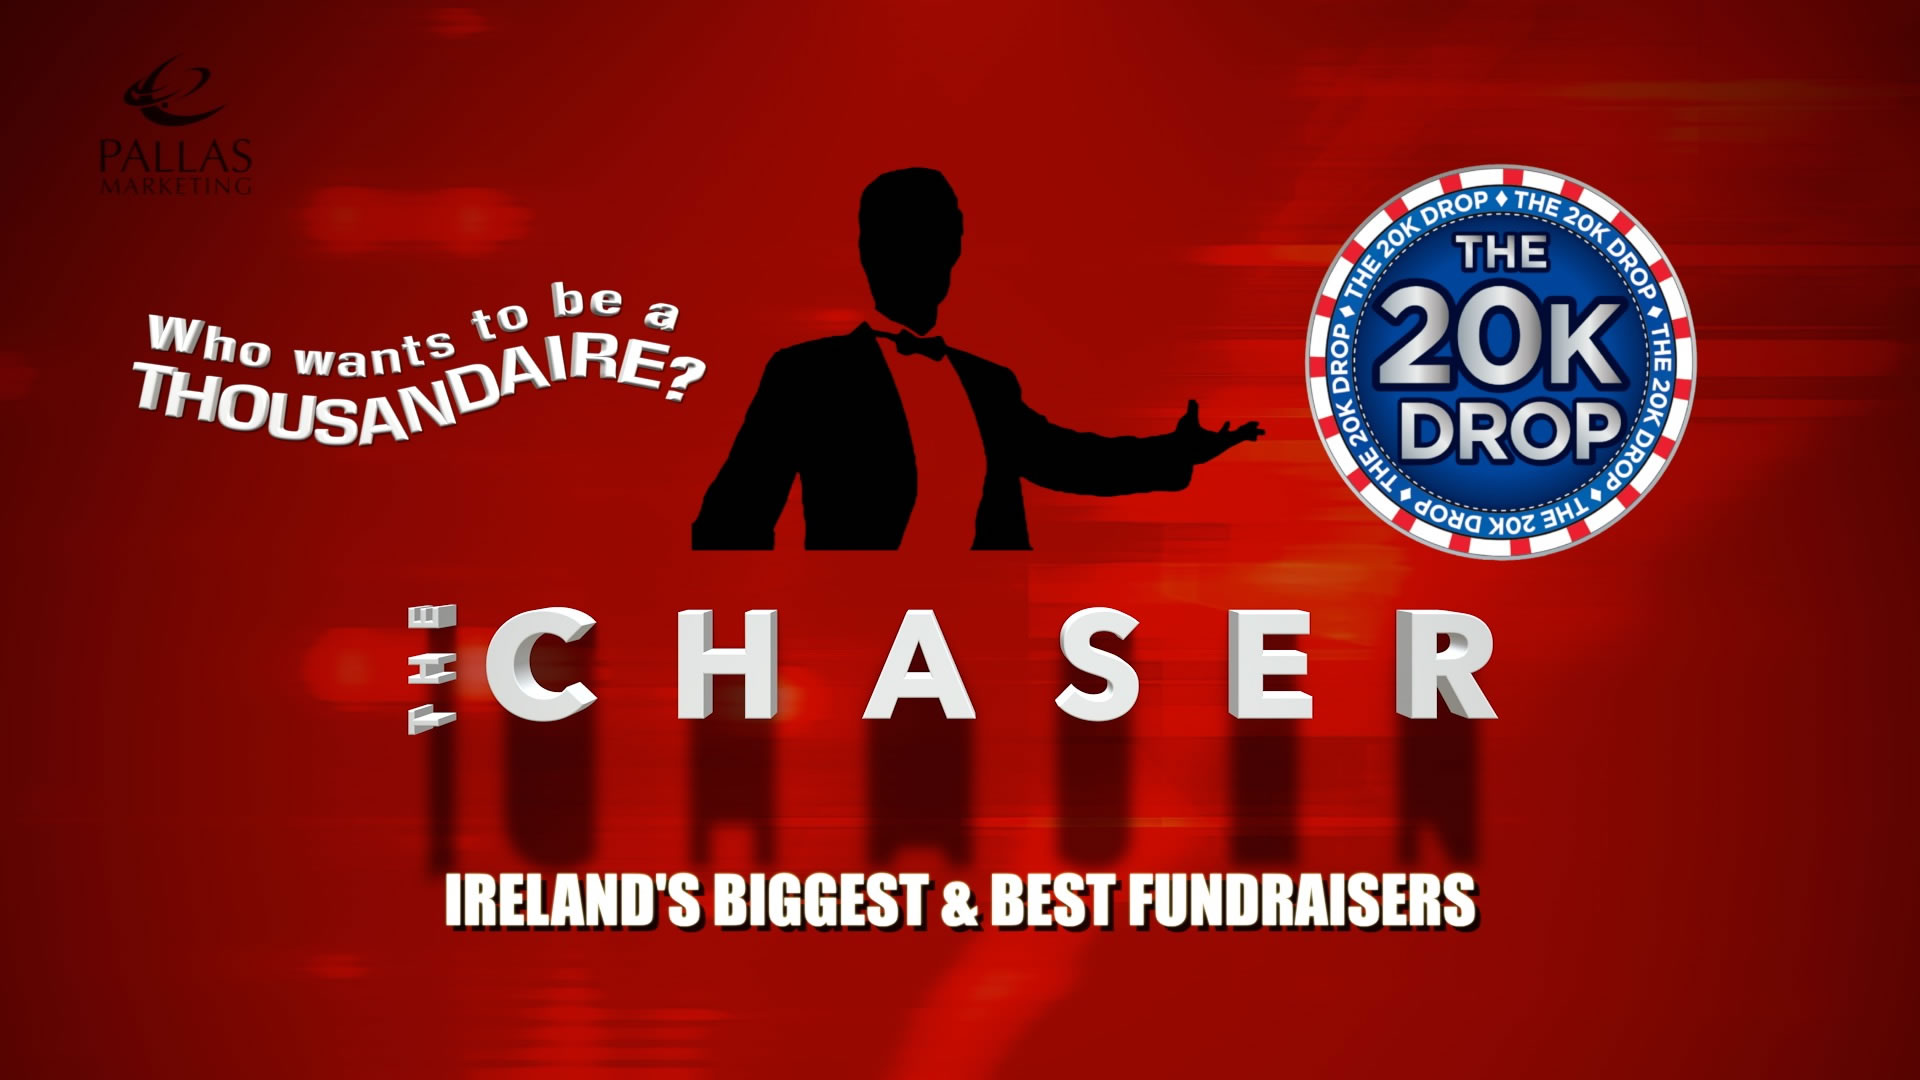 The Chaser, 20k Drop, Thousandaire Fundraiser Quiz Shows Ireland